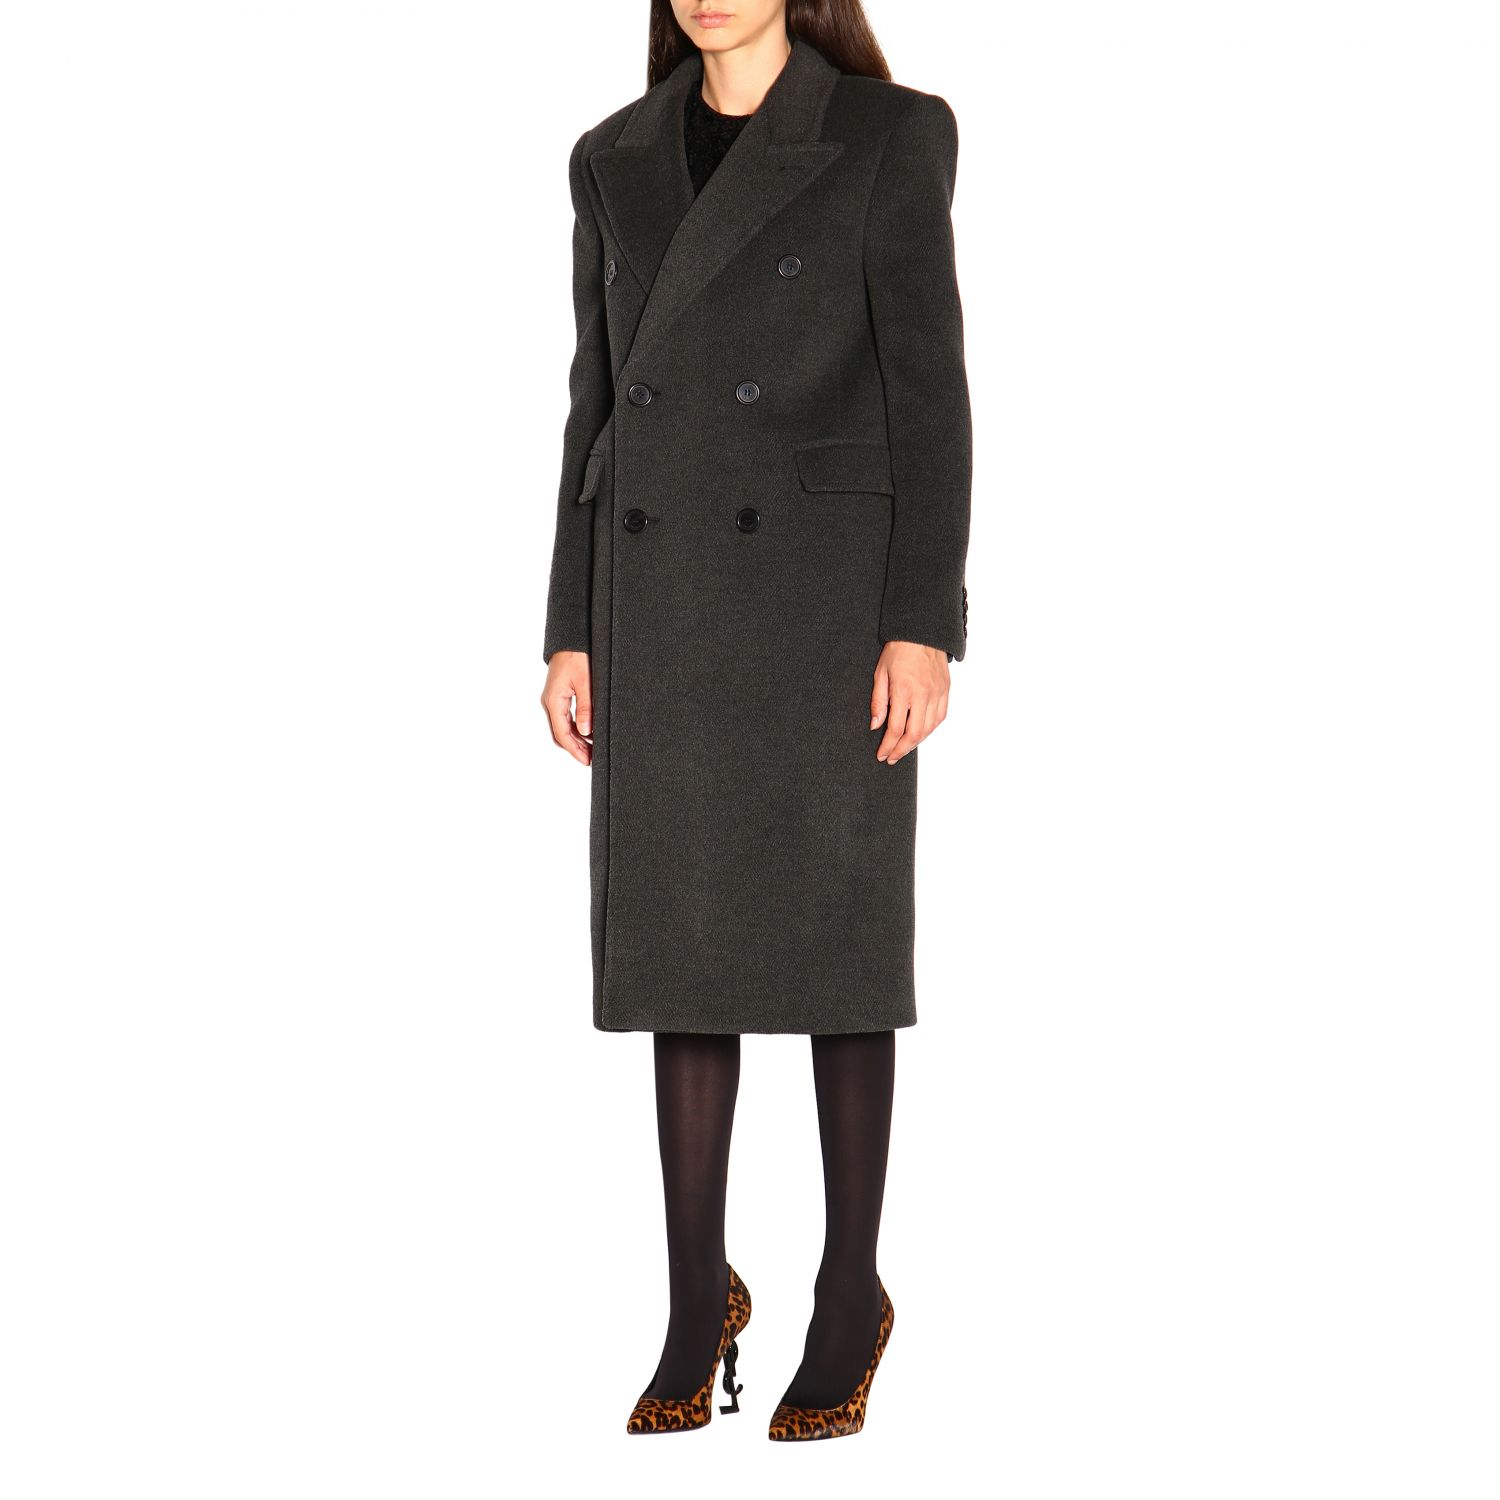 Coat women Saint Laurent charcoal 3